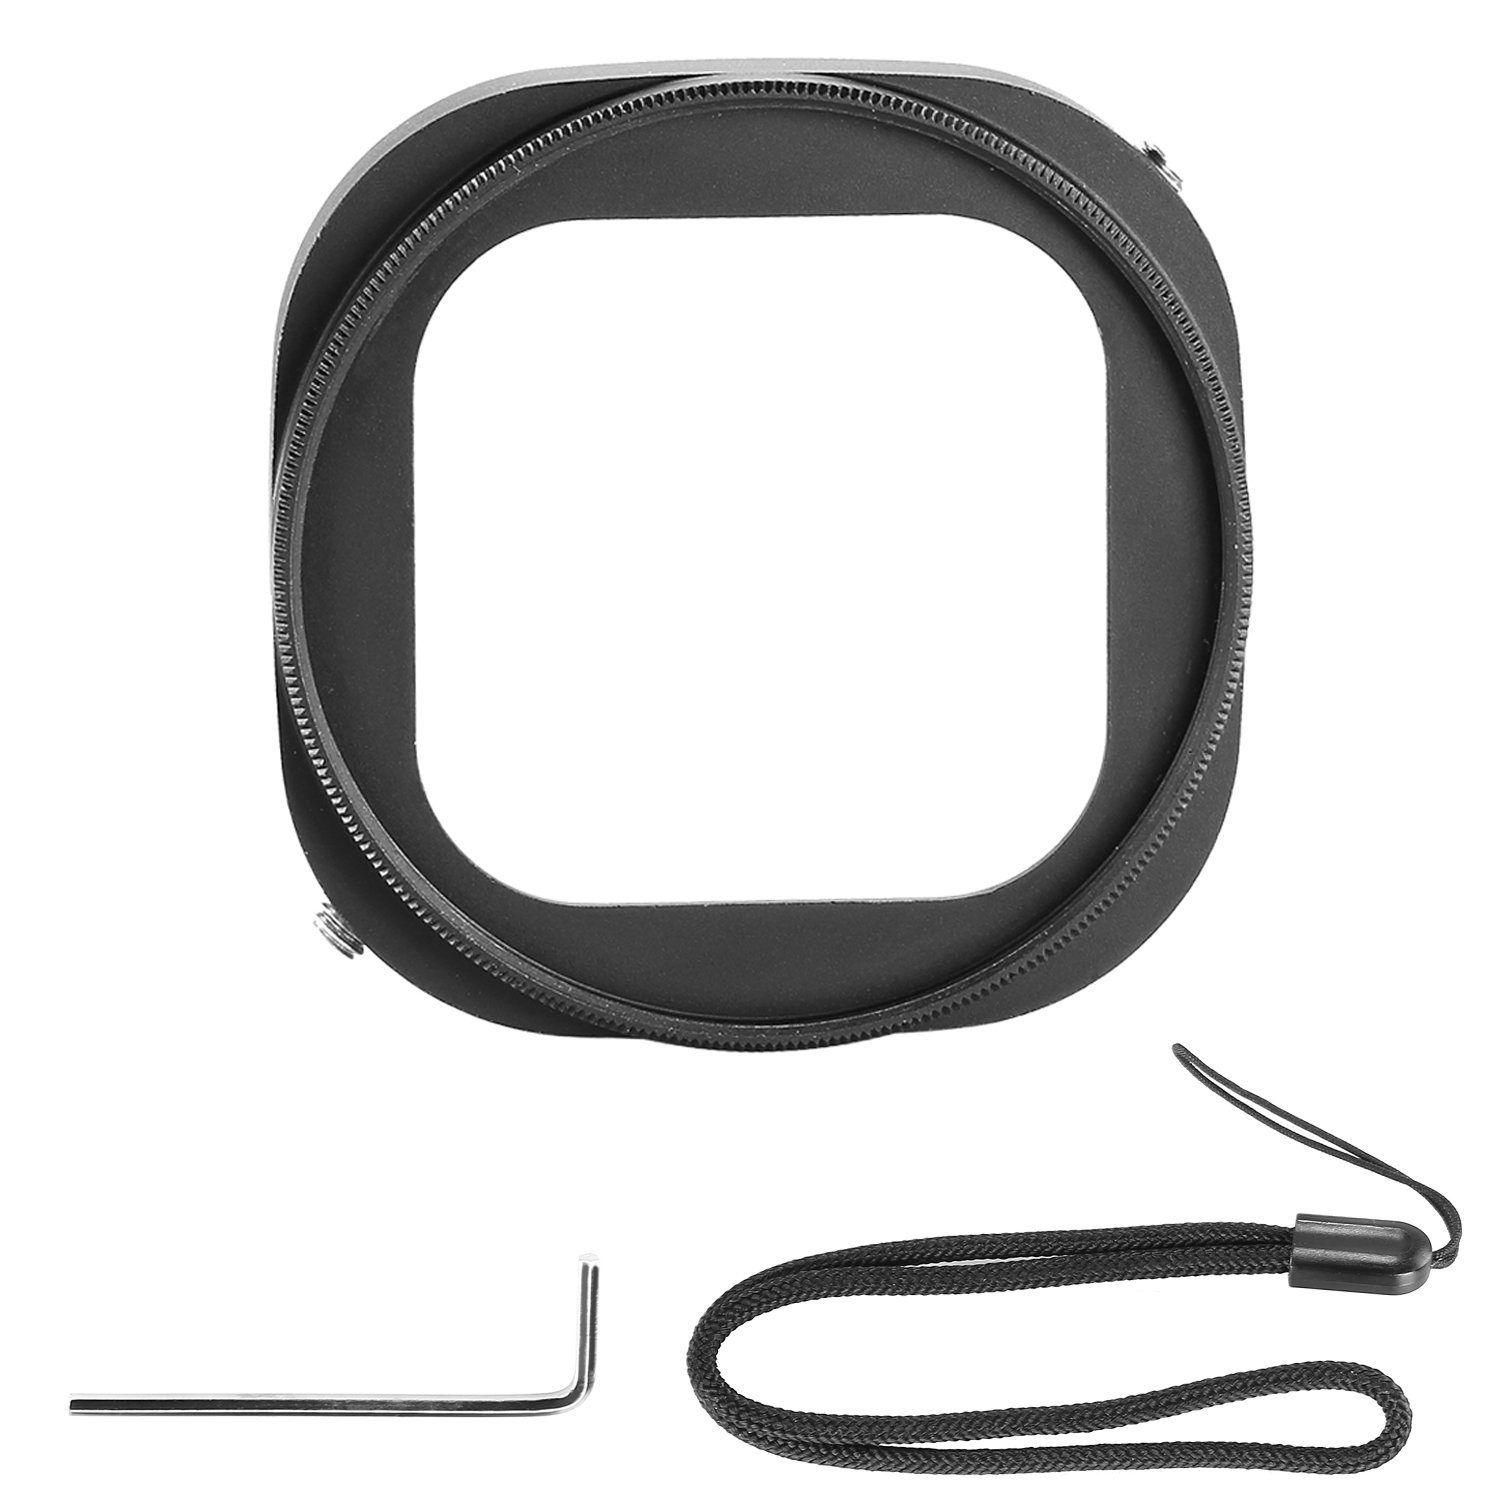 Neewer Aluminum Alloy 52mm Lens Filter Adapter Ring for GoPro HERO 4 Session with a Hexagonal Screwdriver and a Keeper Leash - Black